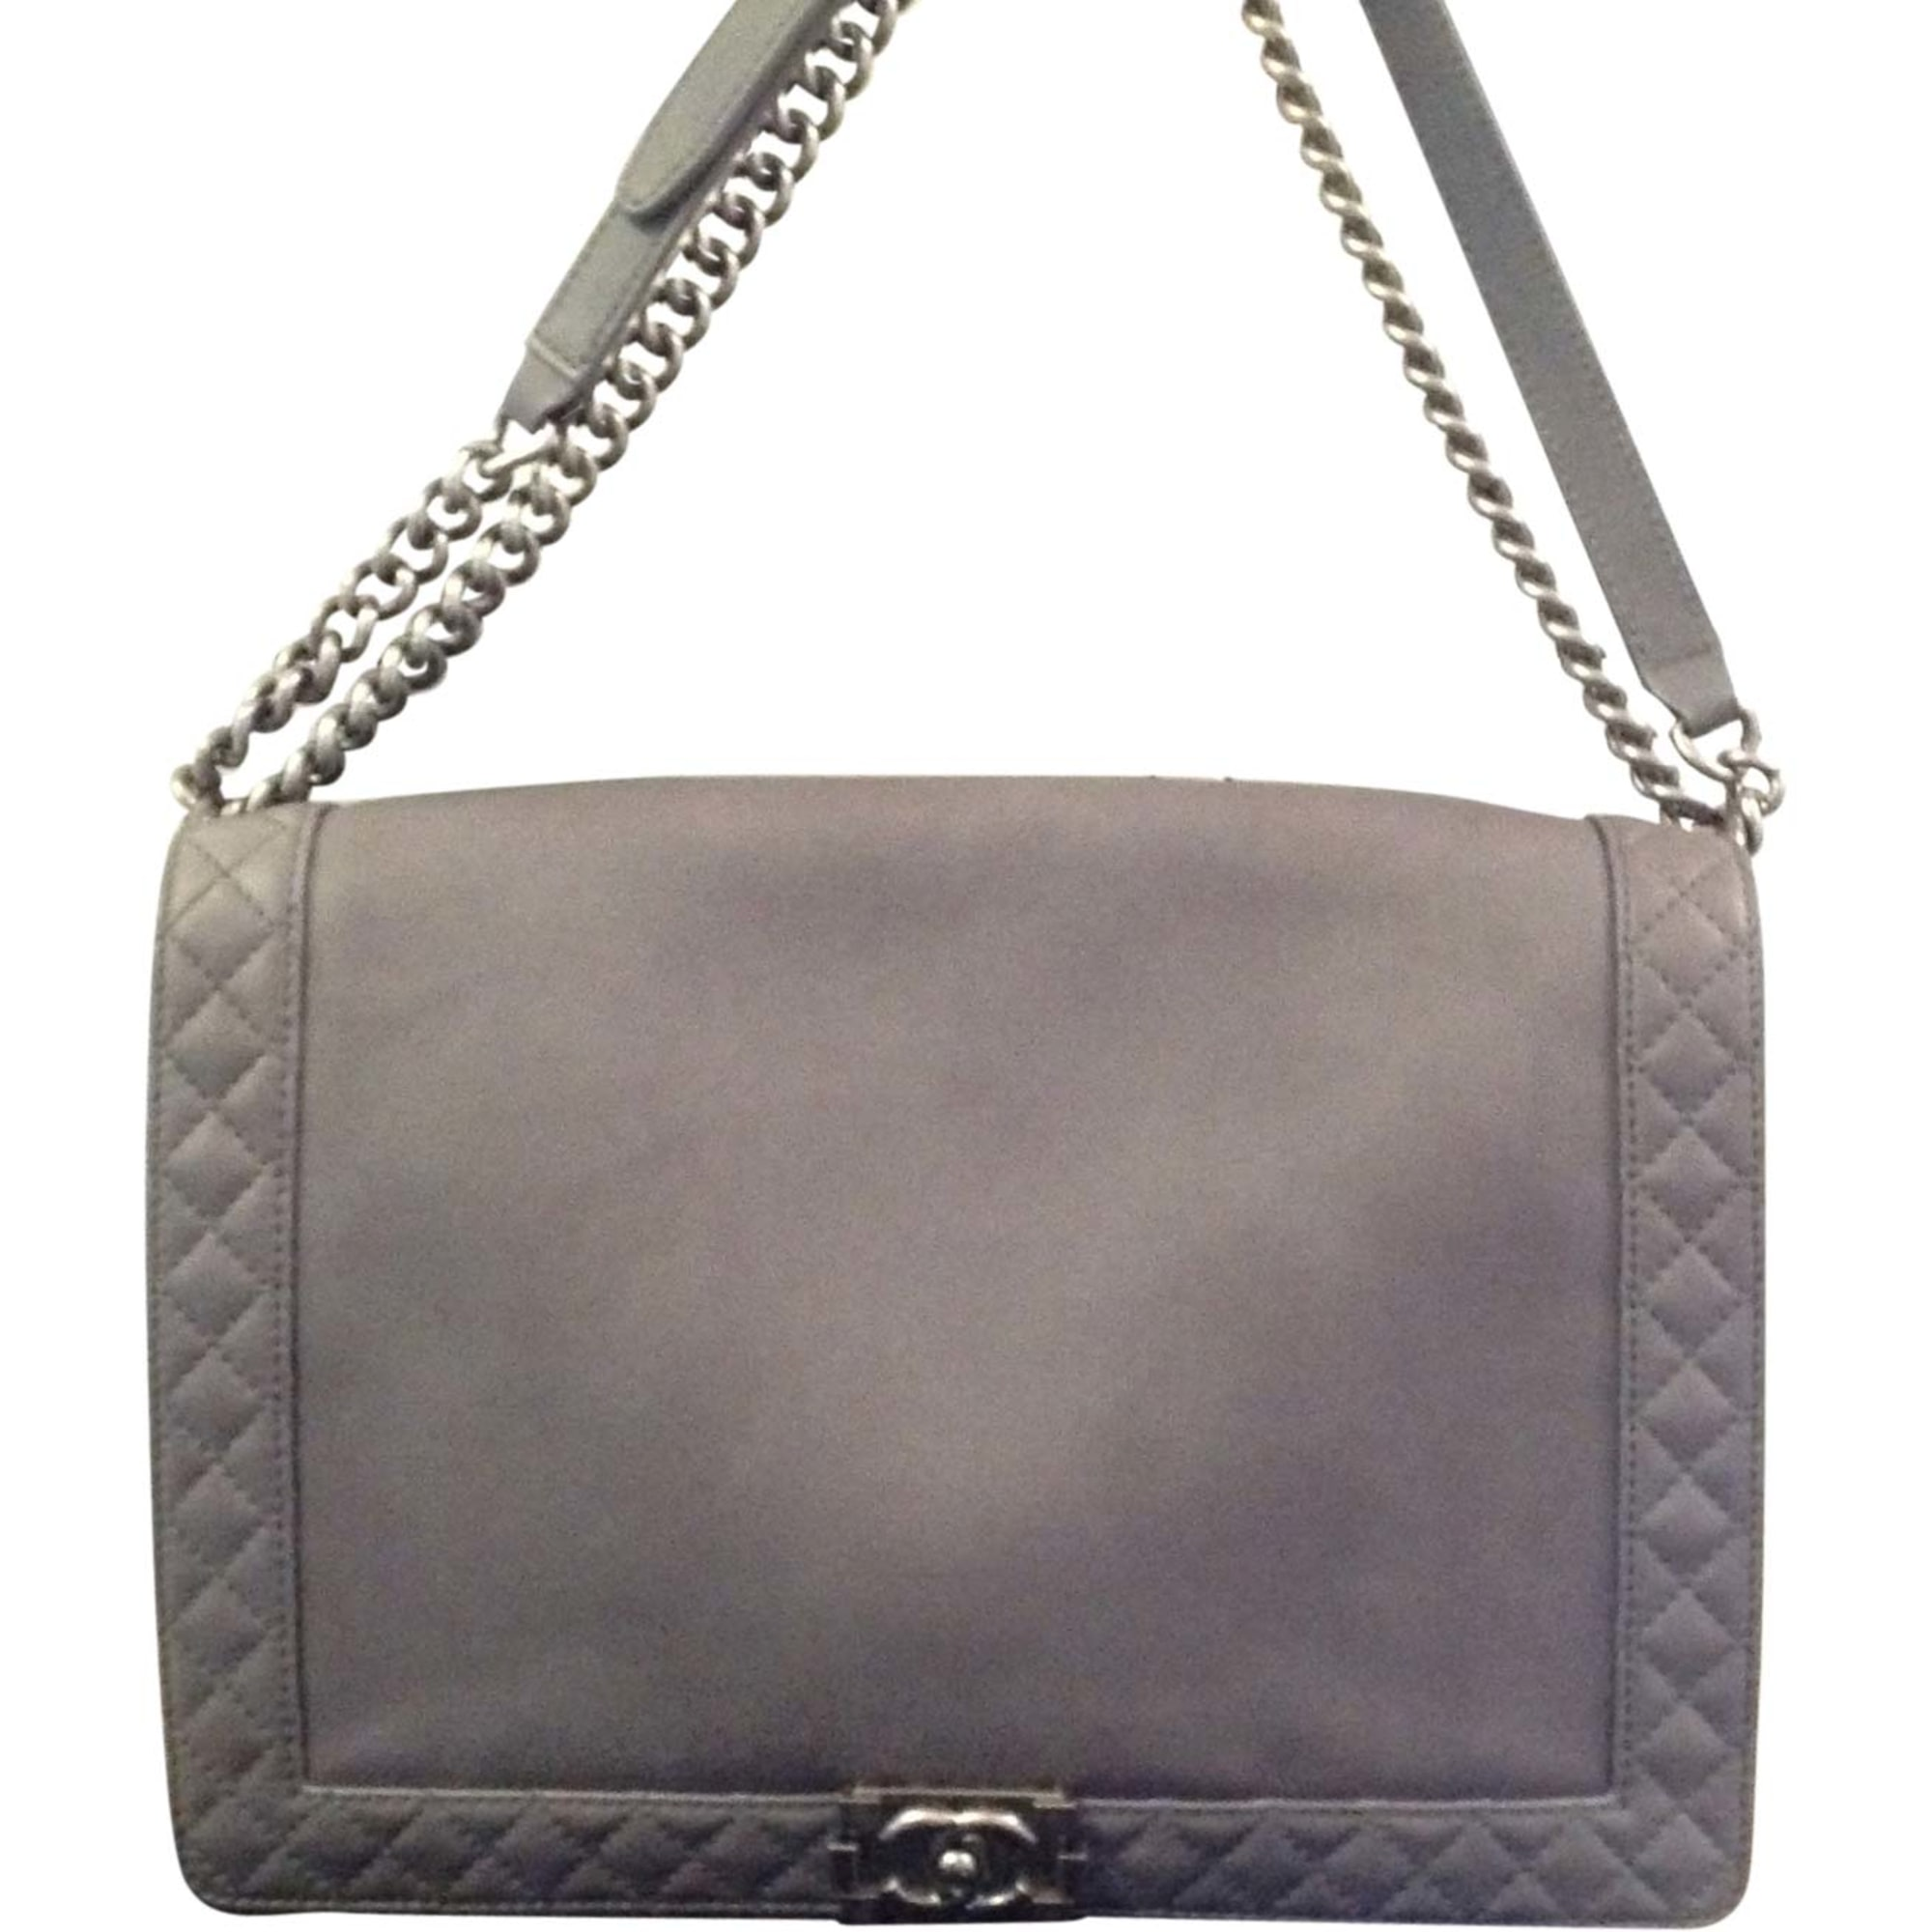 Leather Handbag CHANEL Boy Gray, charcoal